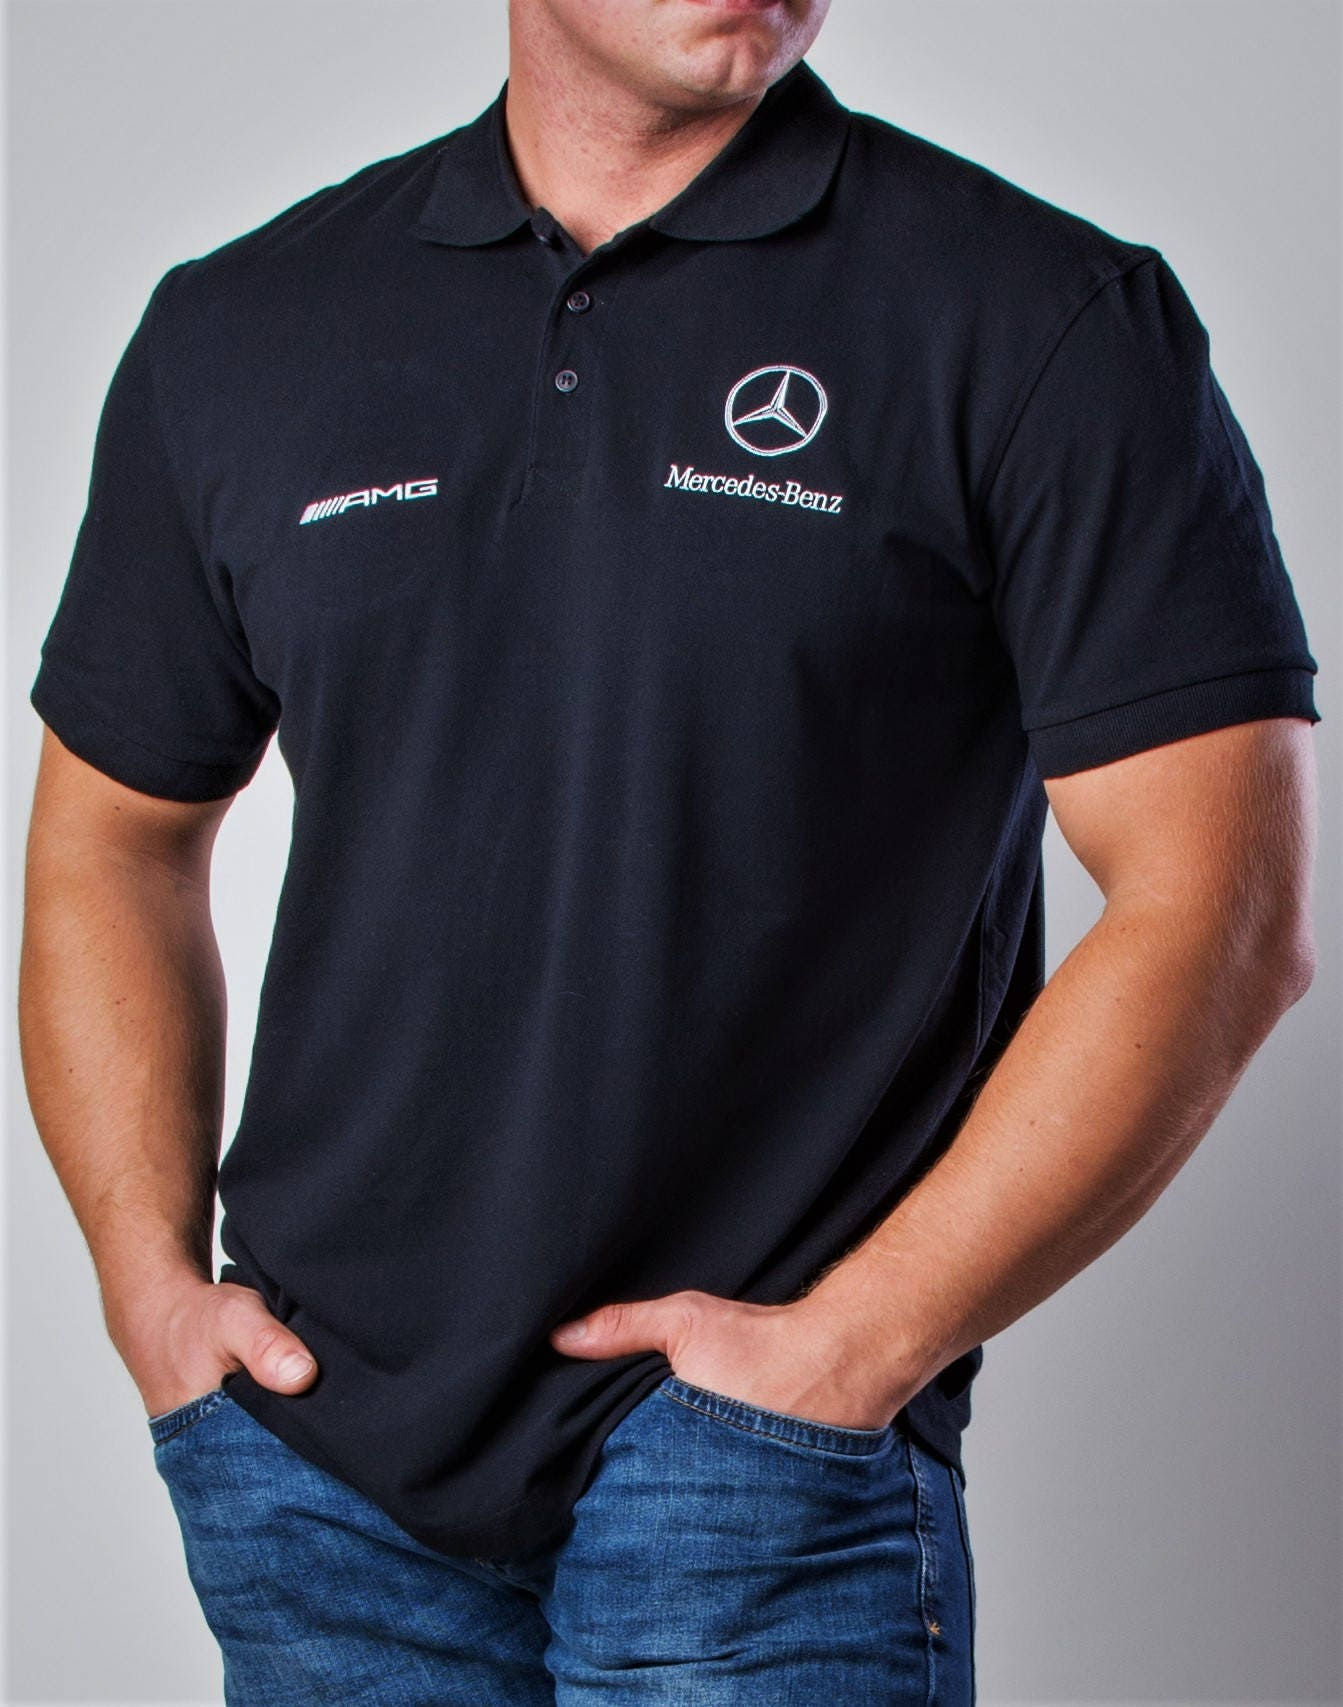 Mercedes Benz Amg Polo Shirt Embroidery Logos Unisex Tshirt